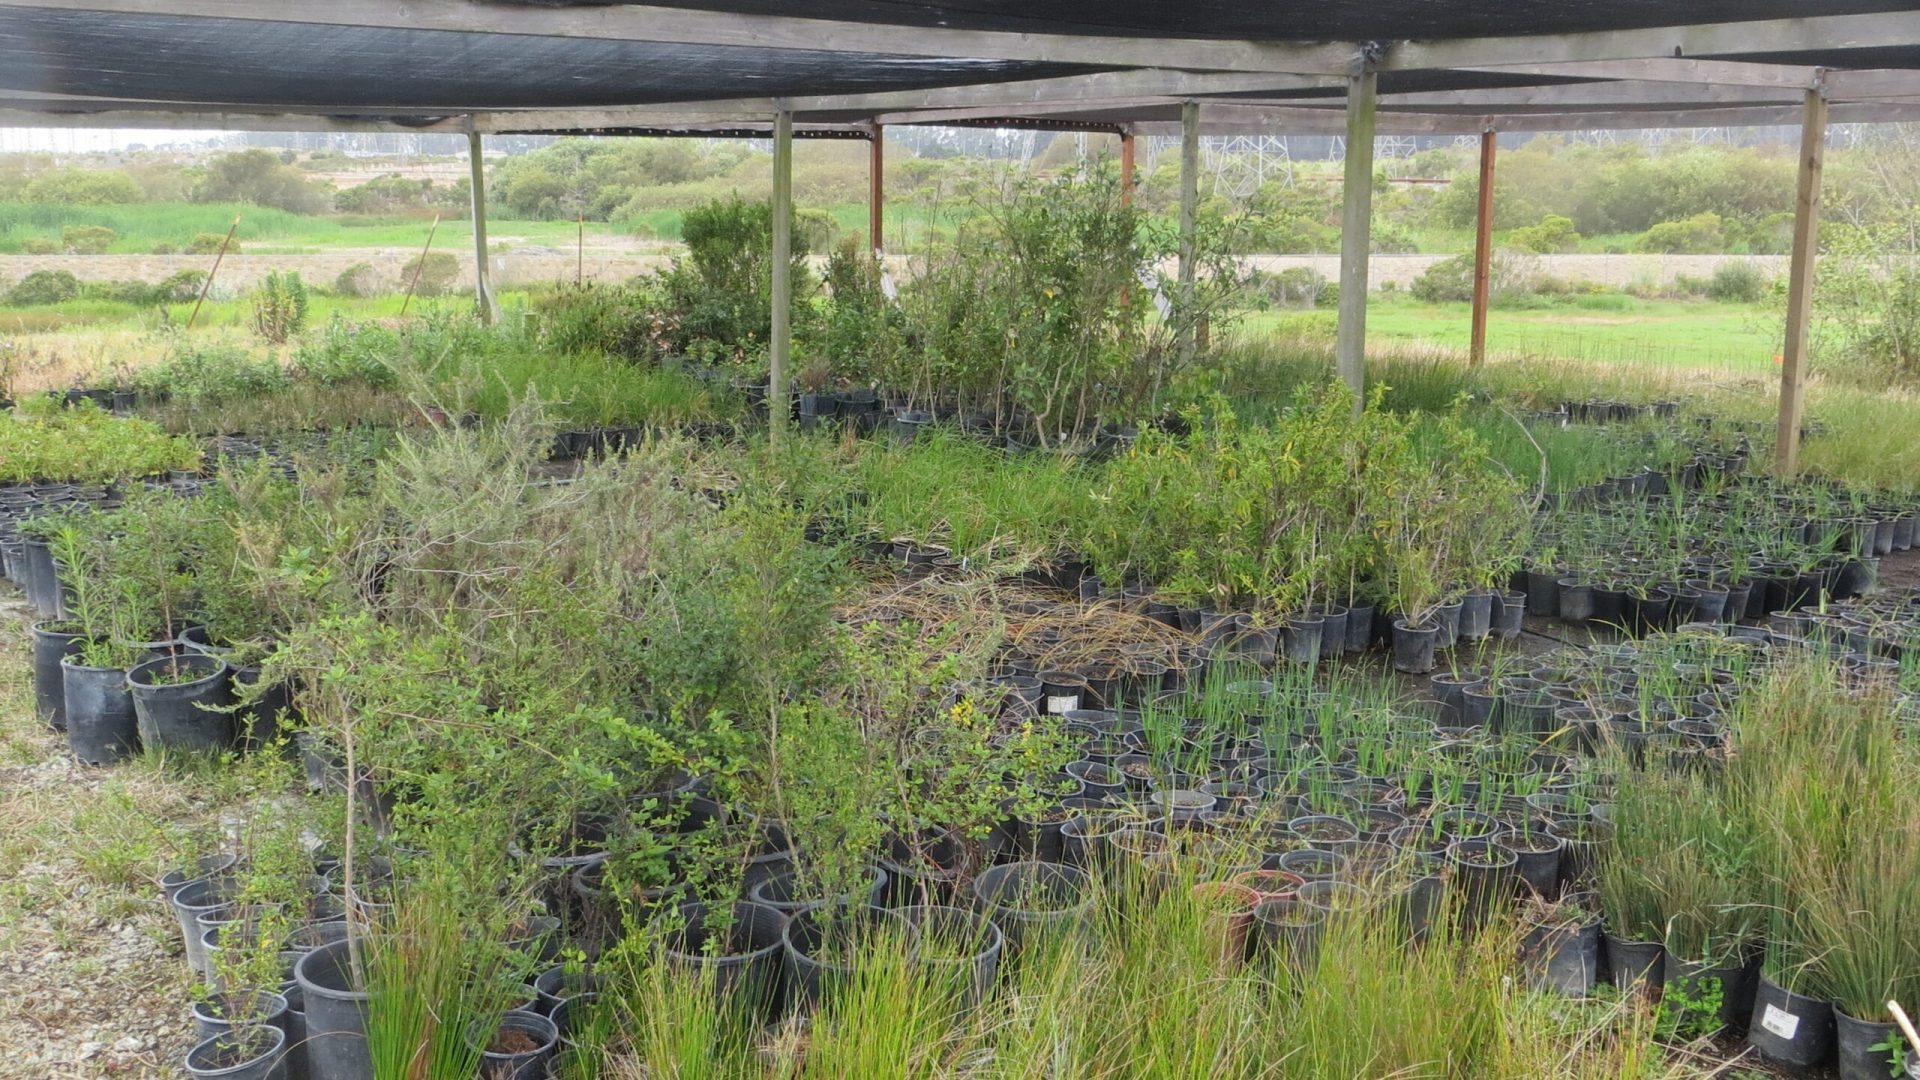 California native plants are hardened off for outplanting at restoration sites.